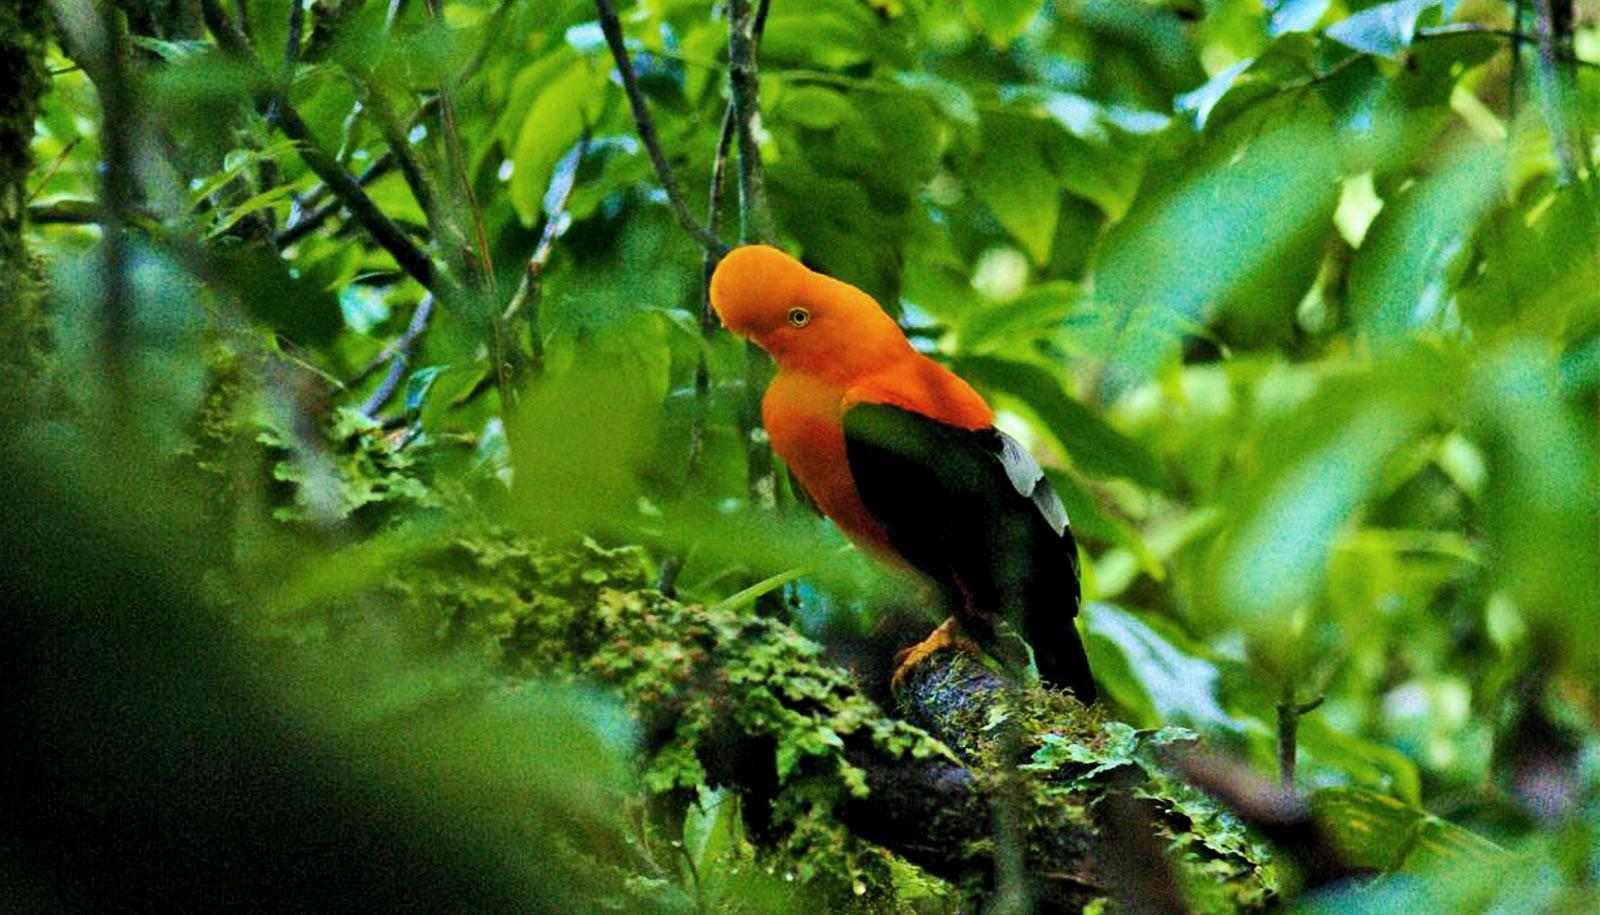 A bright orange and green bird sits in a tree